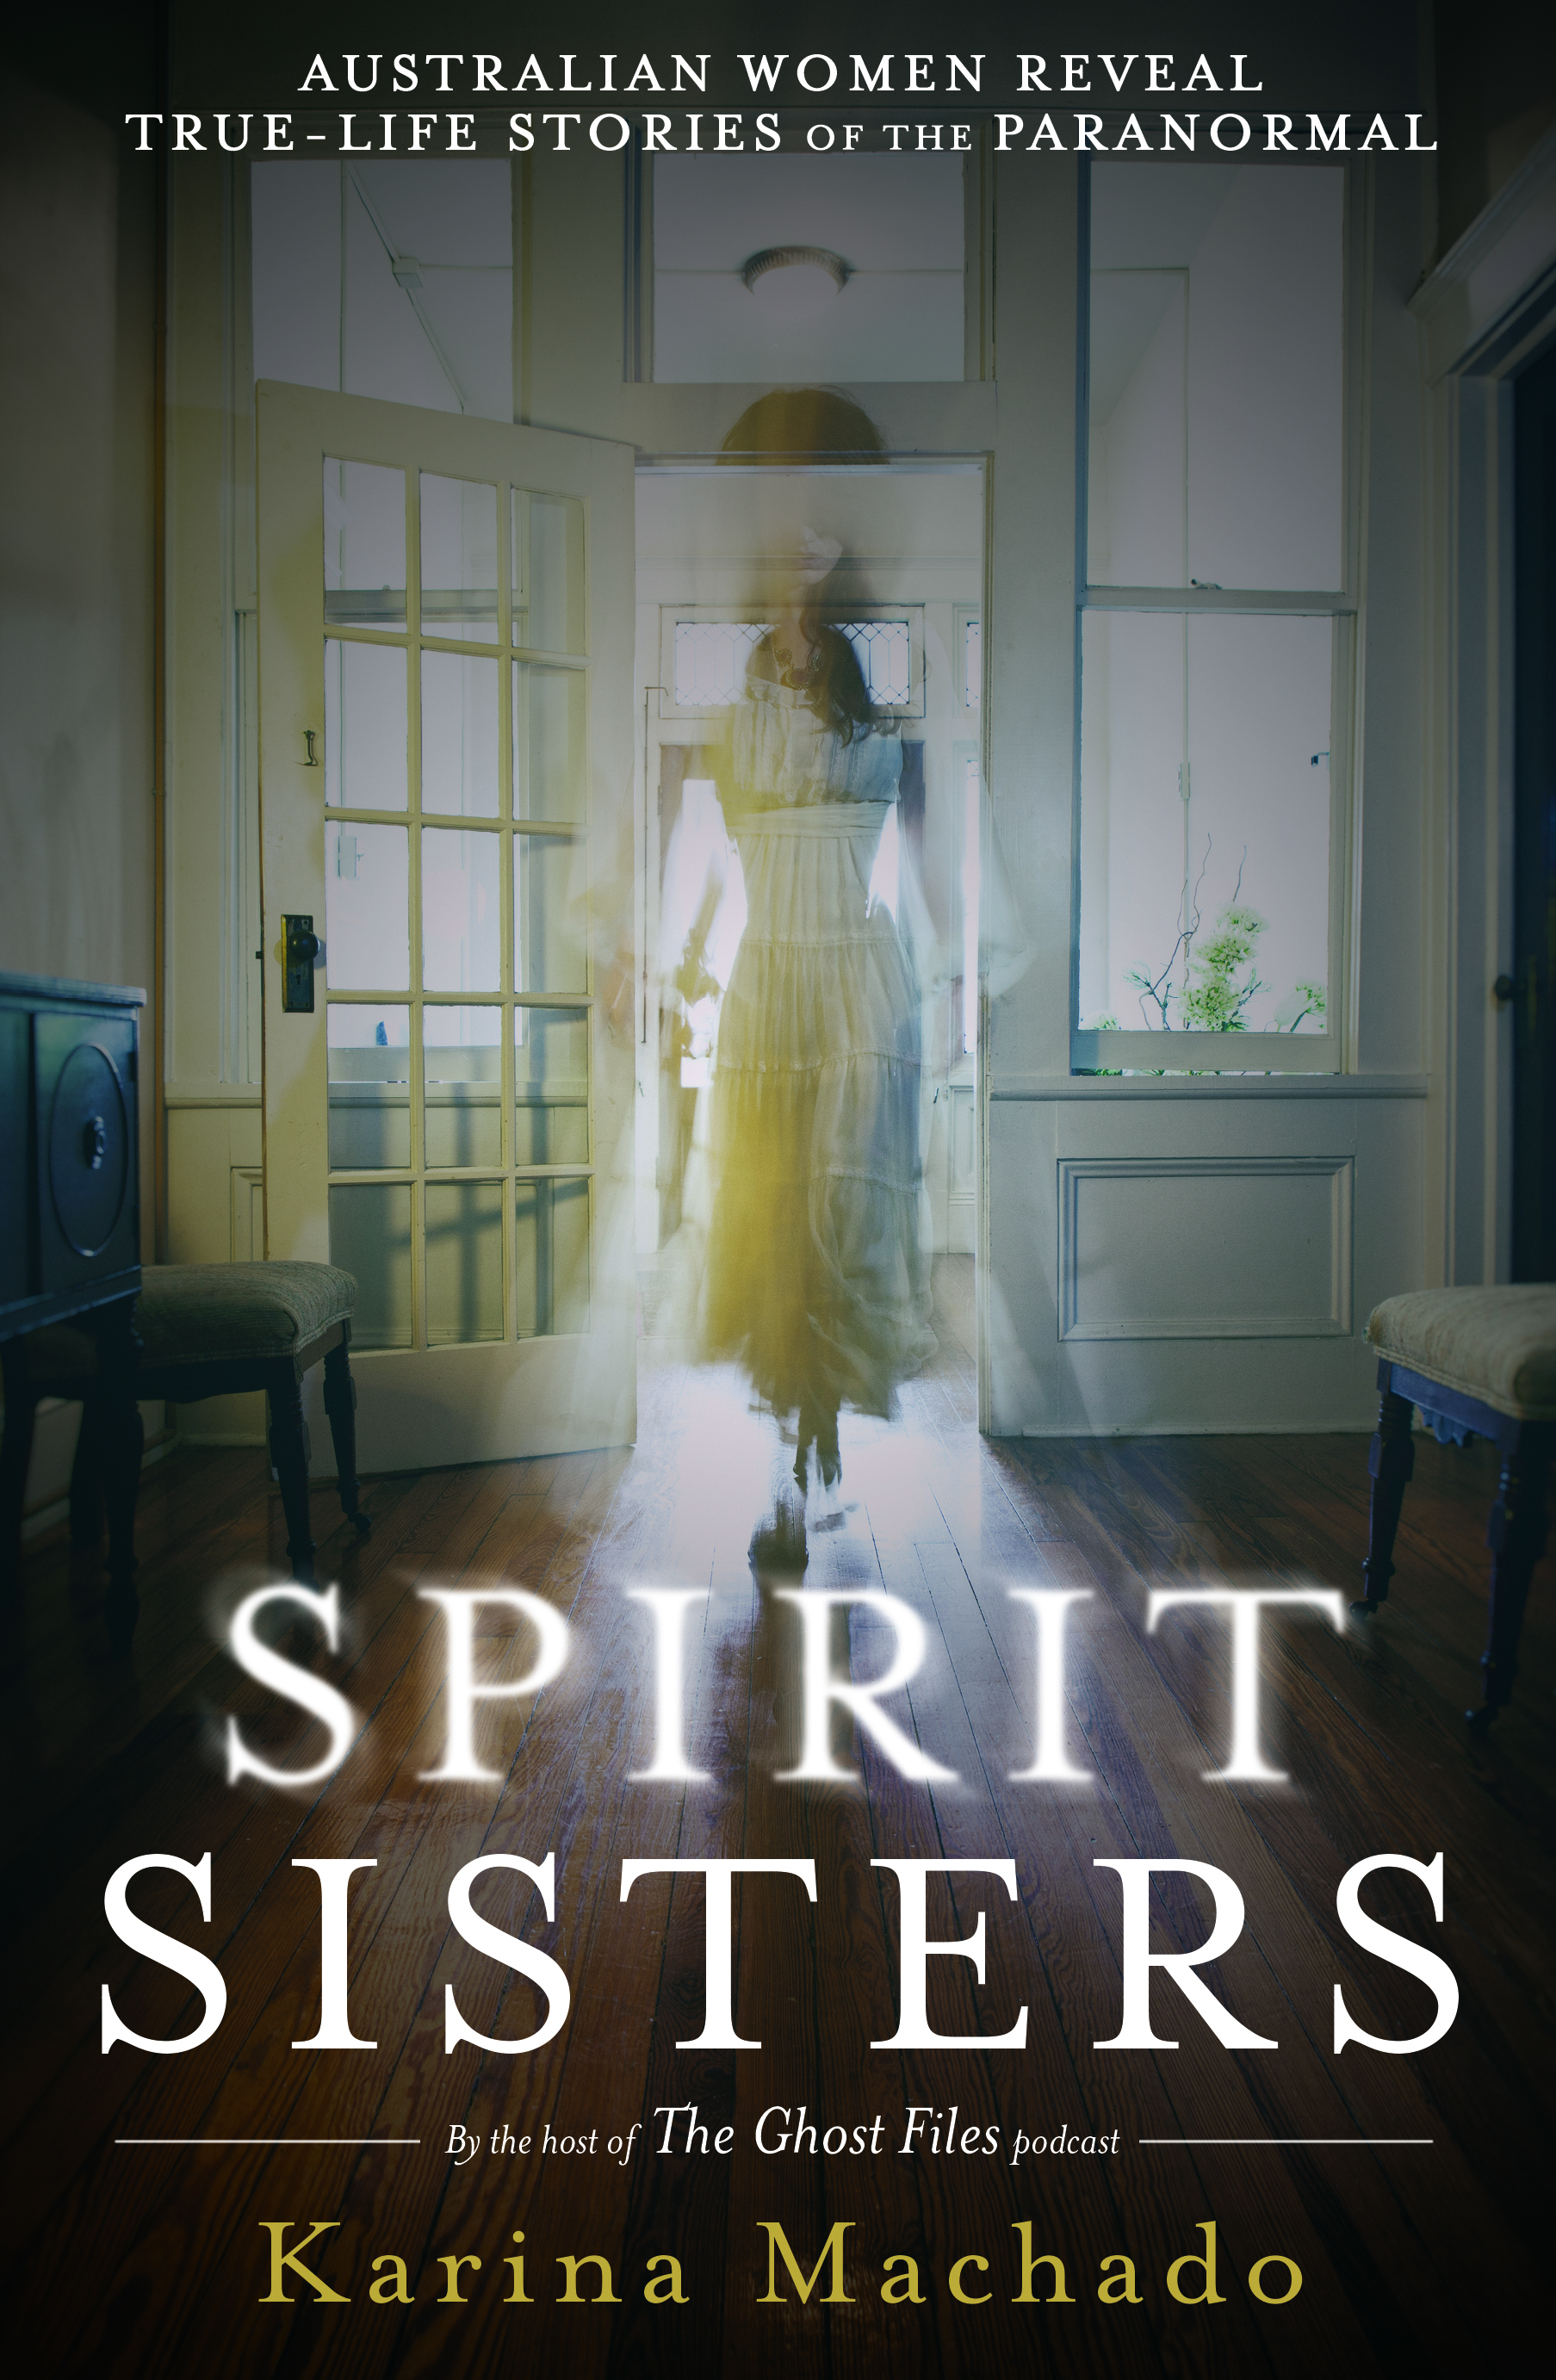 spirit sisters by Karina machado original 2009 cover